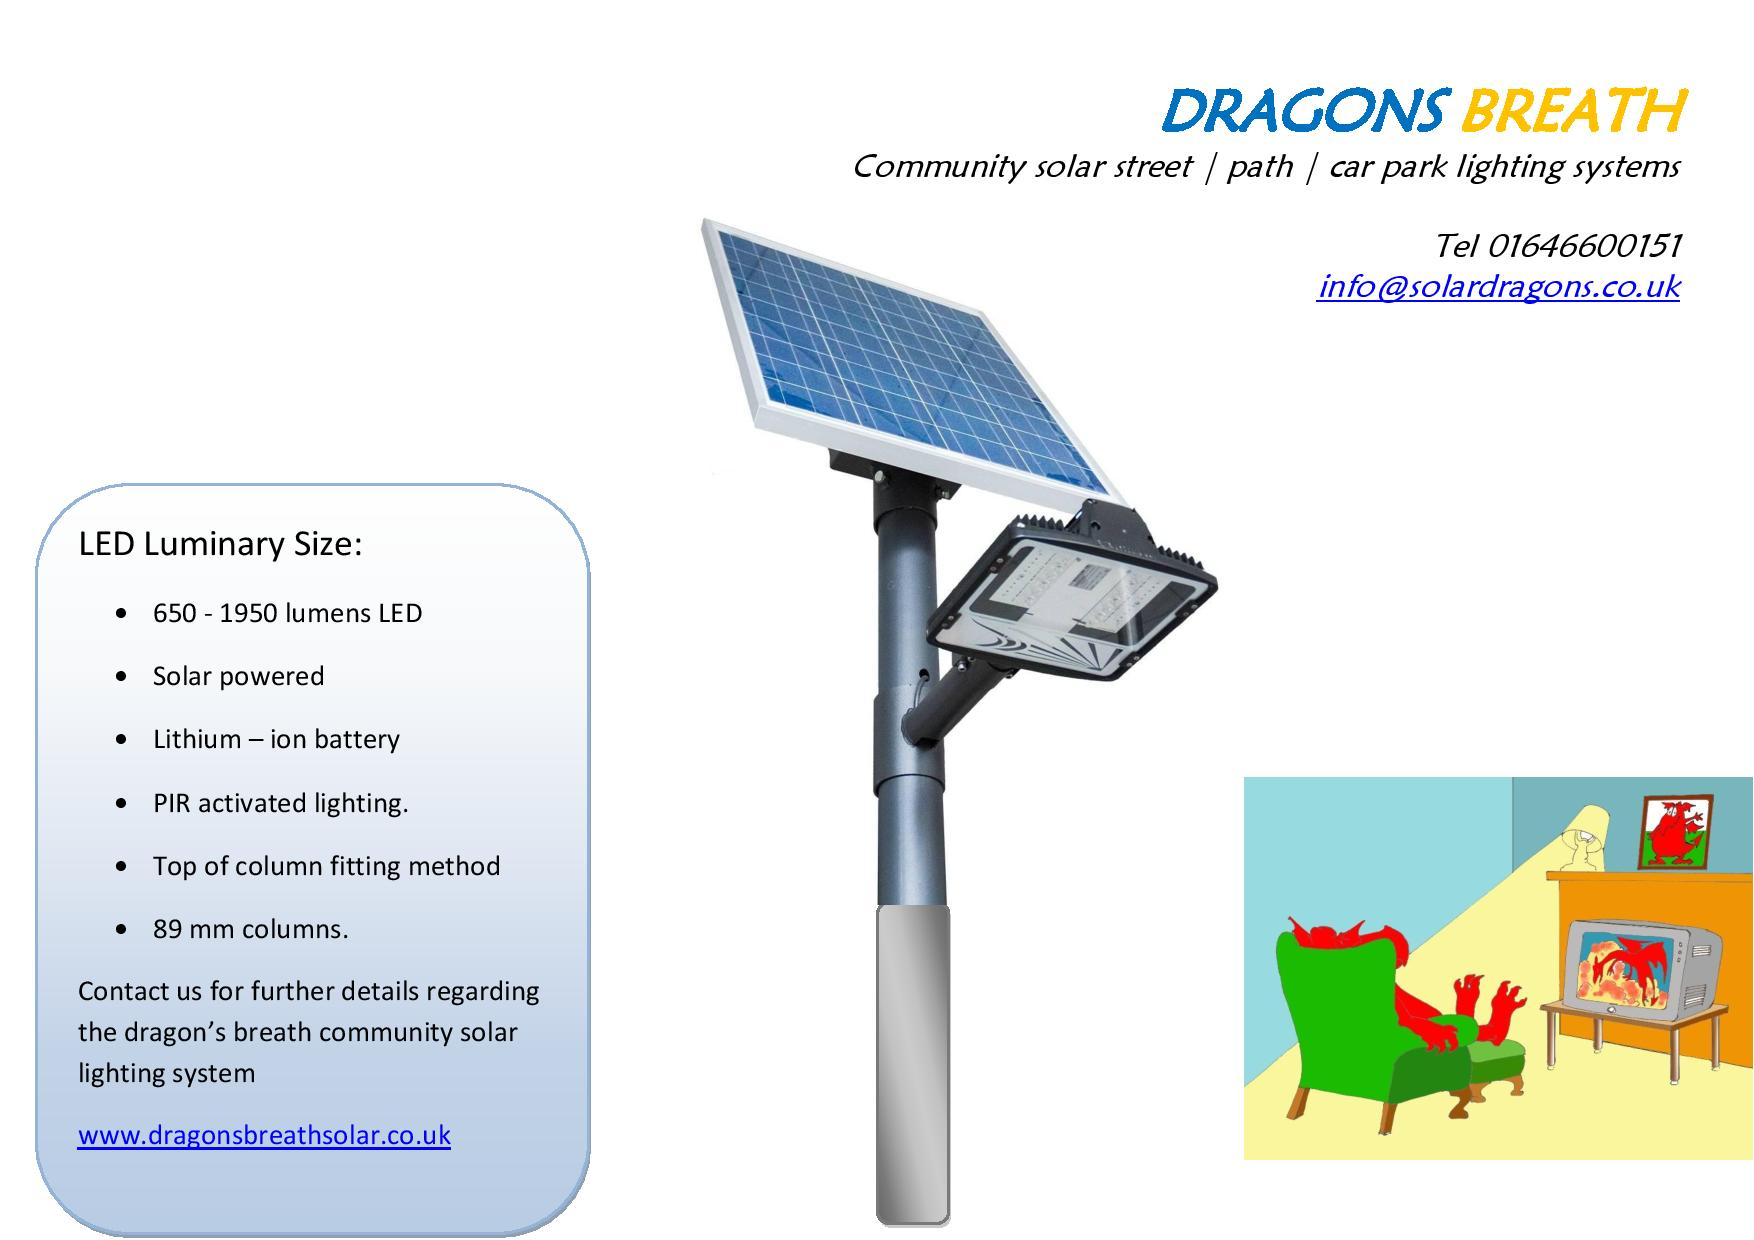 Communal solar street light